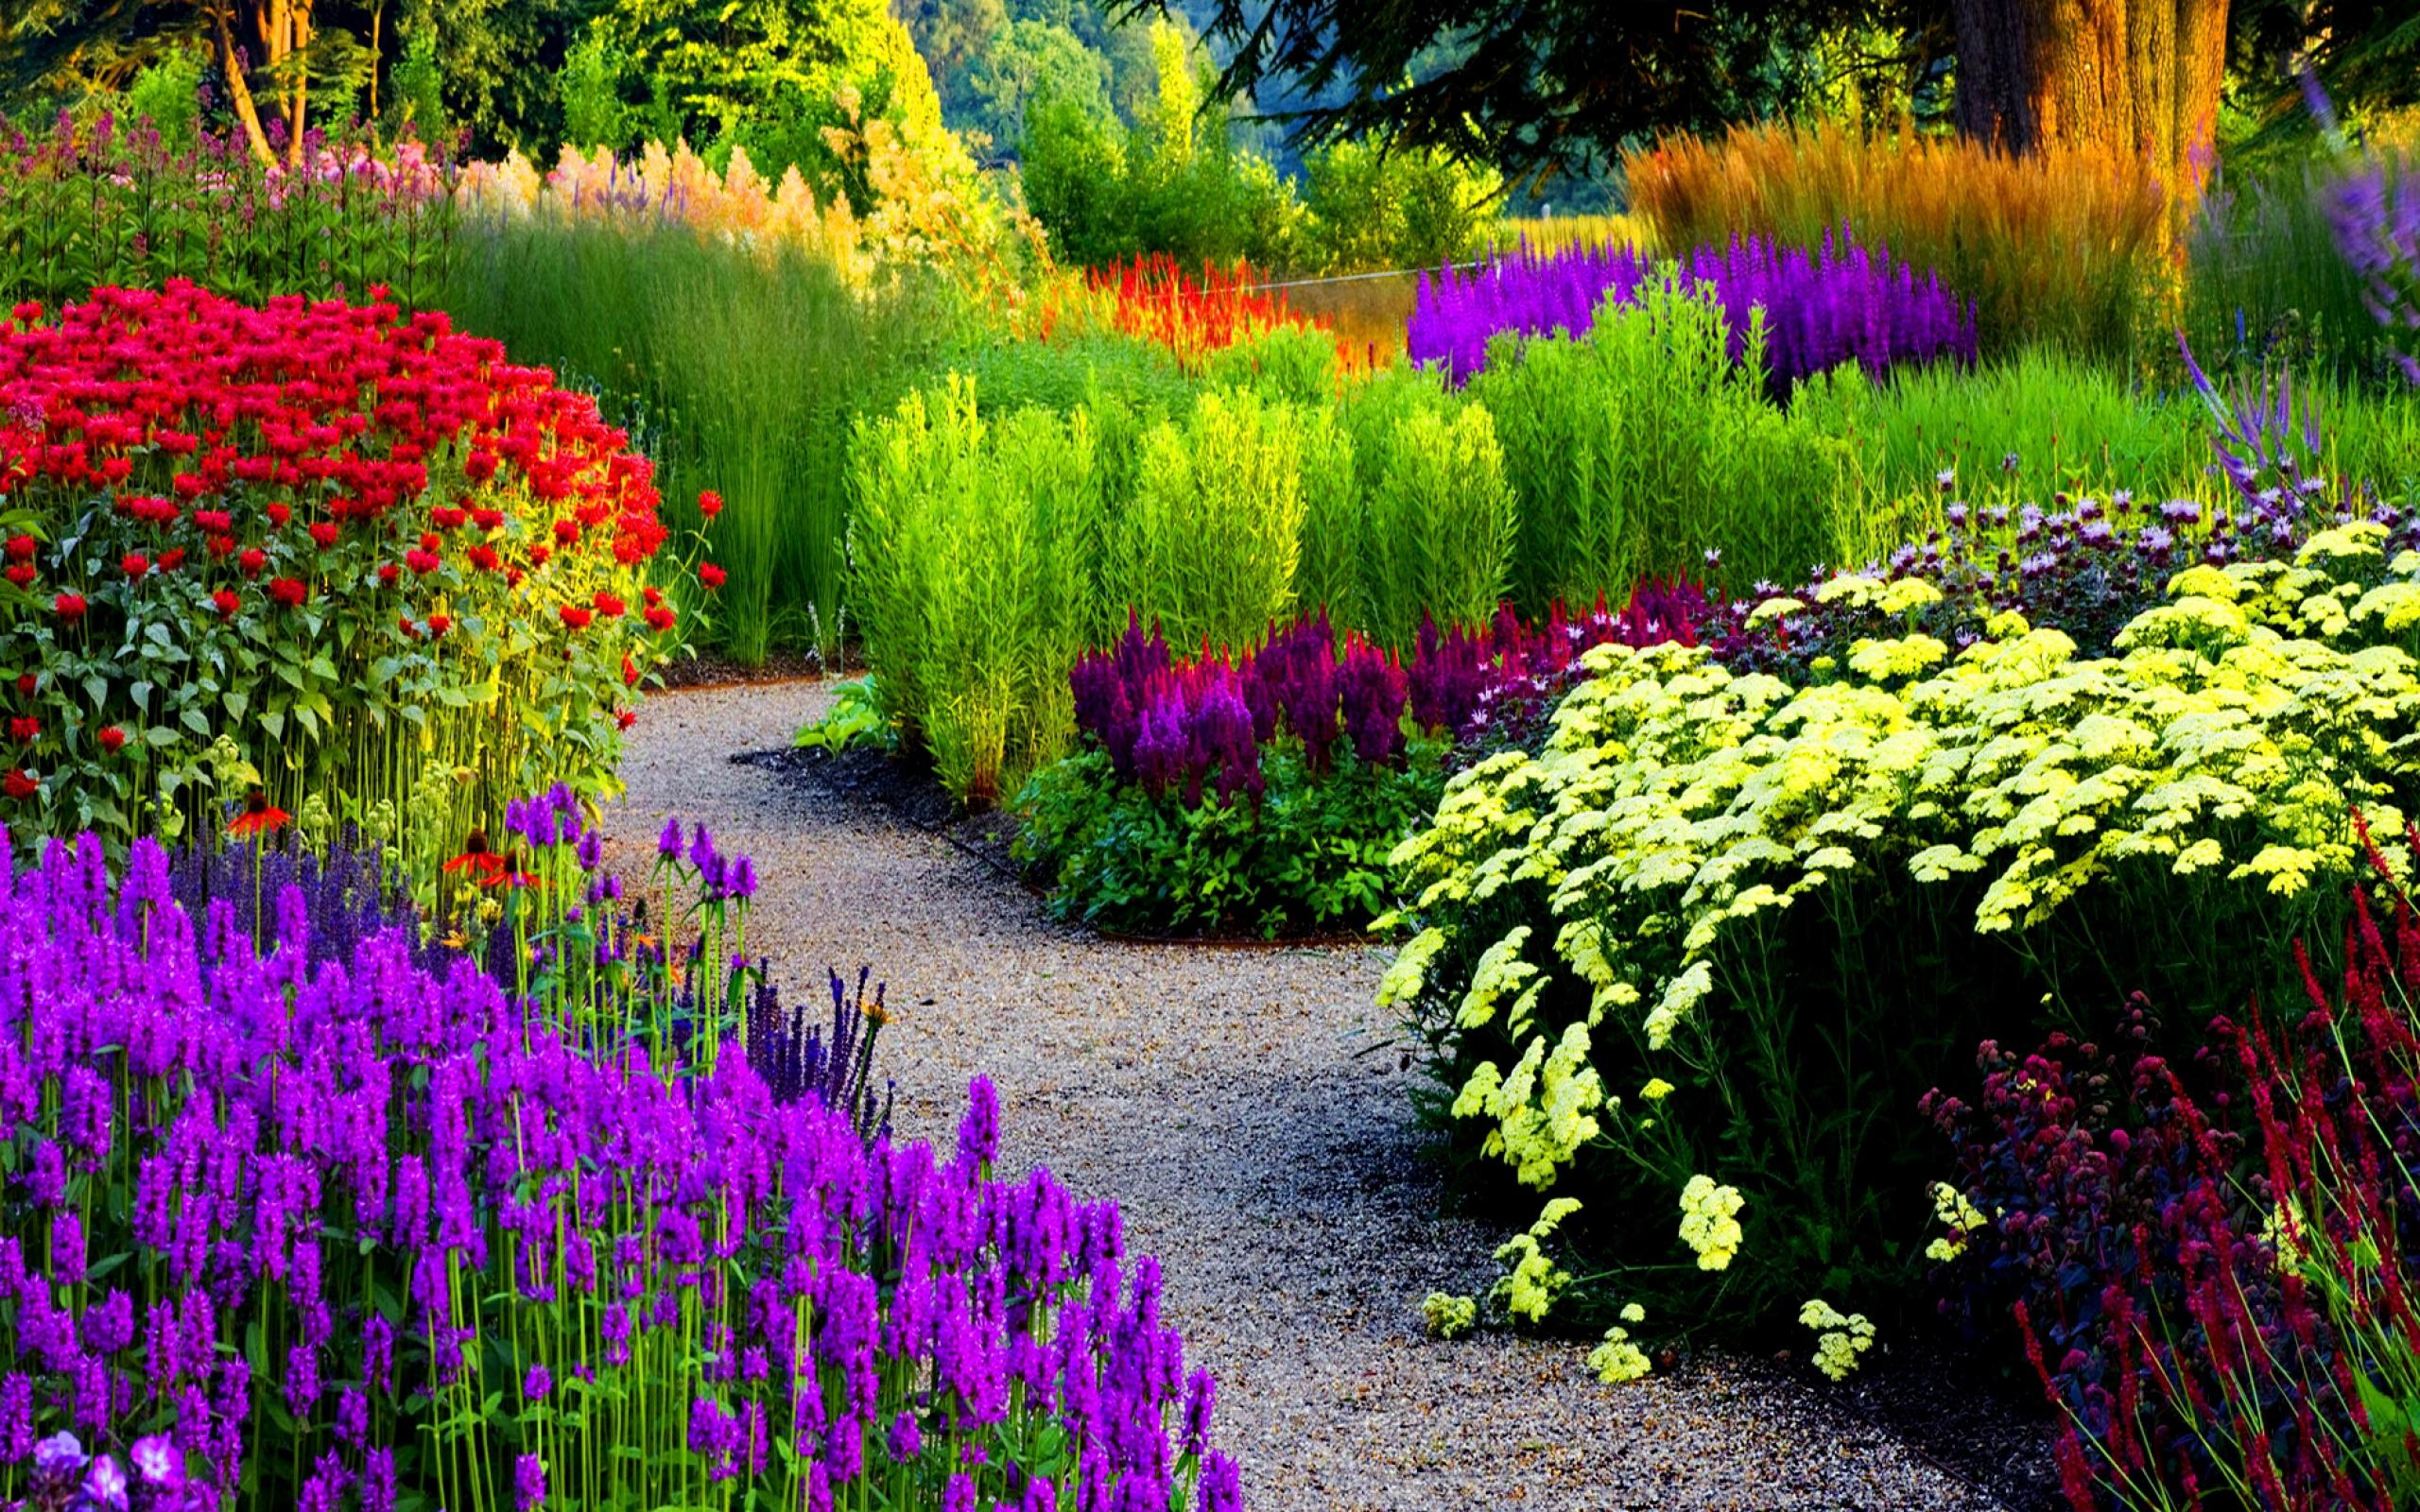 Best 53 Garden Backgrounds For Computers On Hipwallpaper Most Beautiful Flower Garden 119042 Hd Wallpaper Backgrounds Download